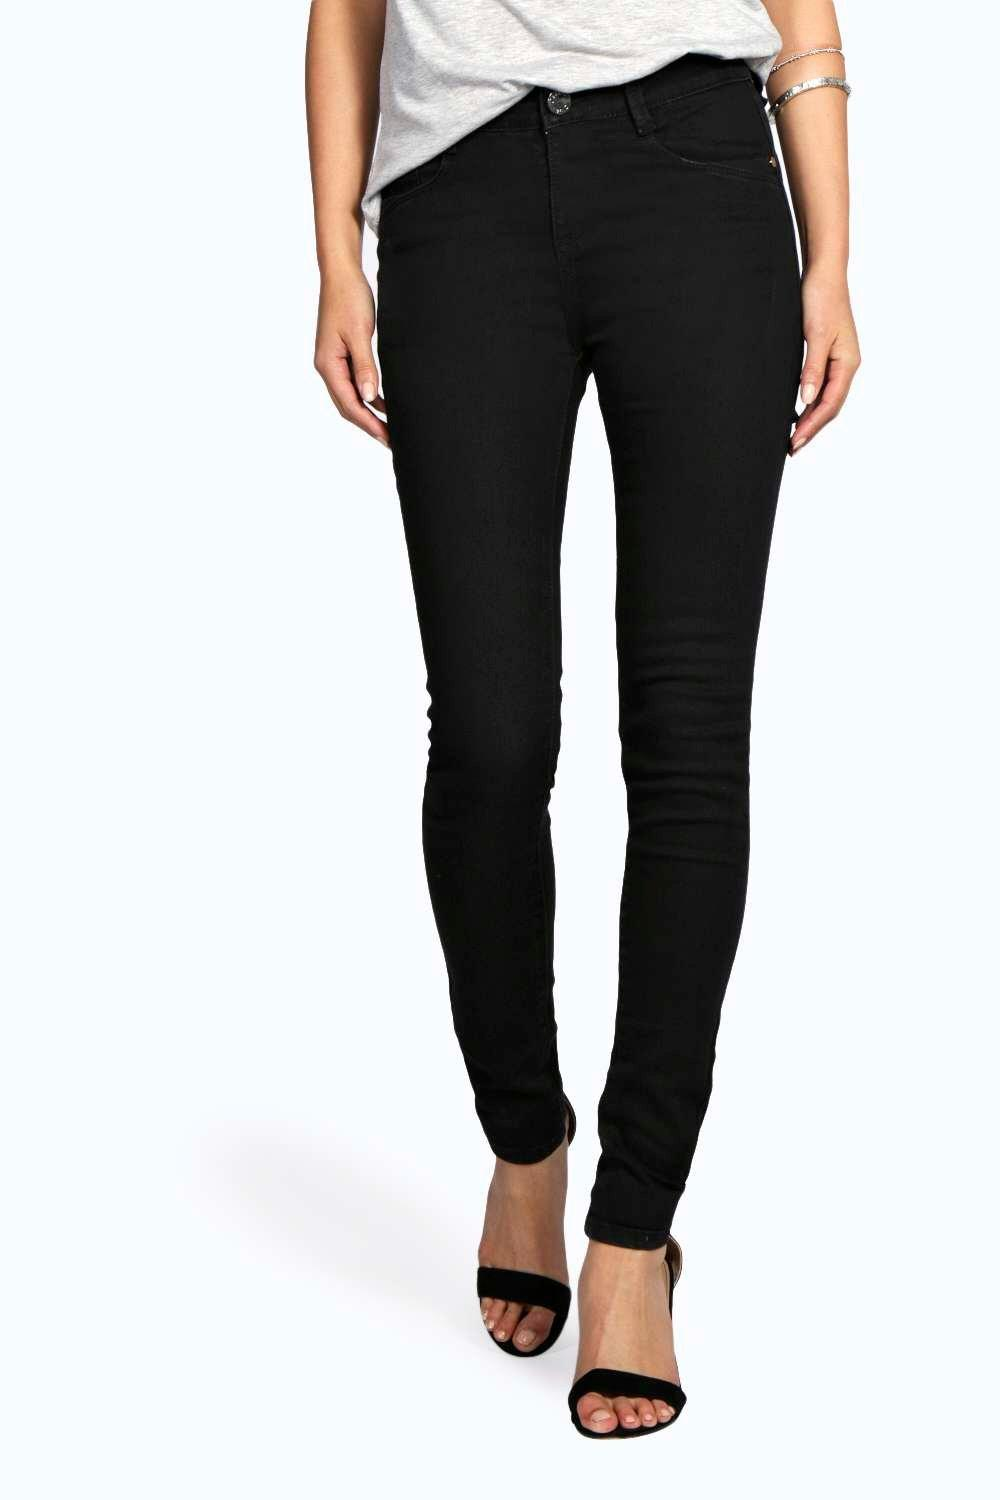 Jinnie High Waisted 5 Pocket Skinny Jeans